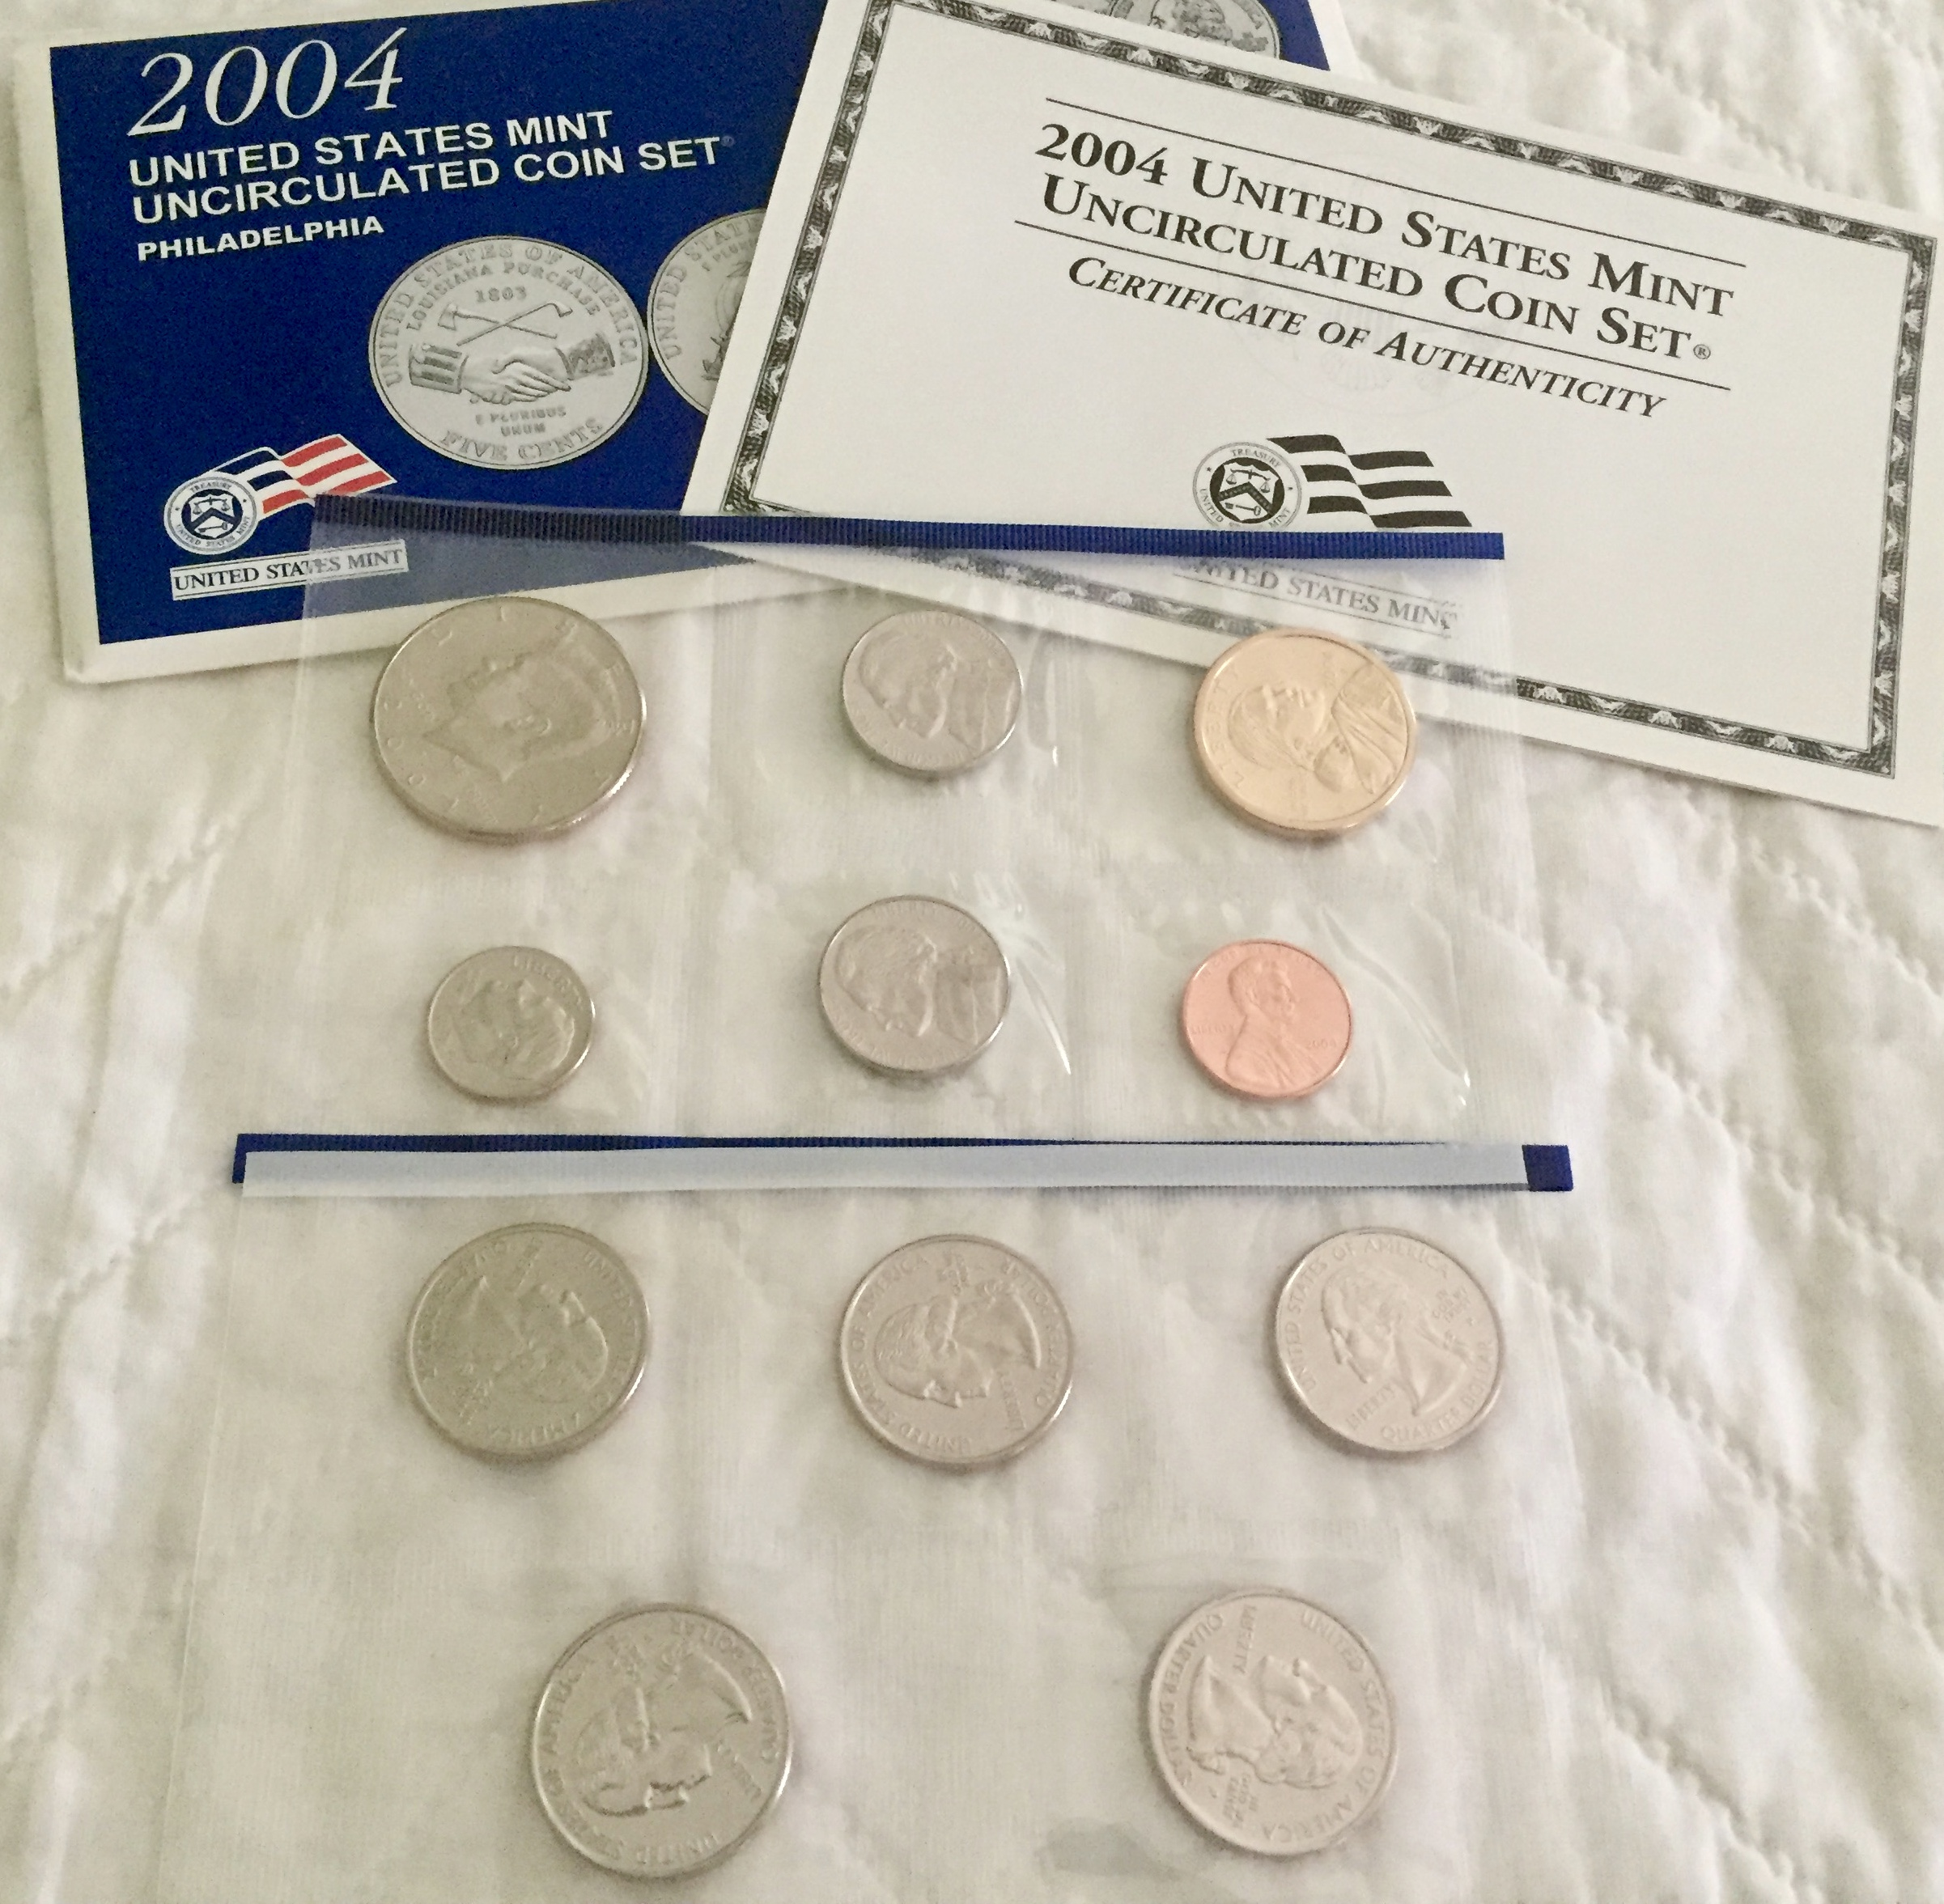 Item HG 24 - 2001 US Uncirculated Coin Set - Philadelphia Mint - Wow